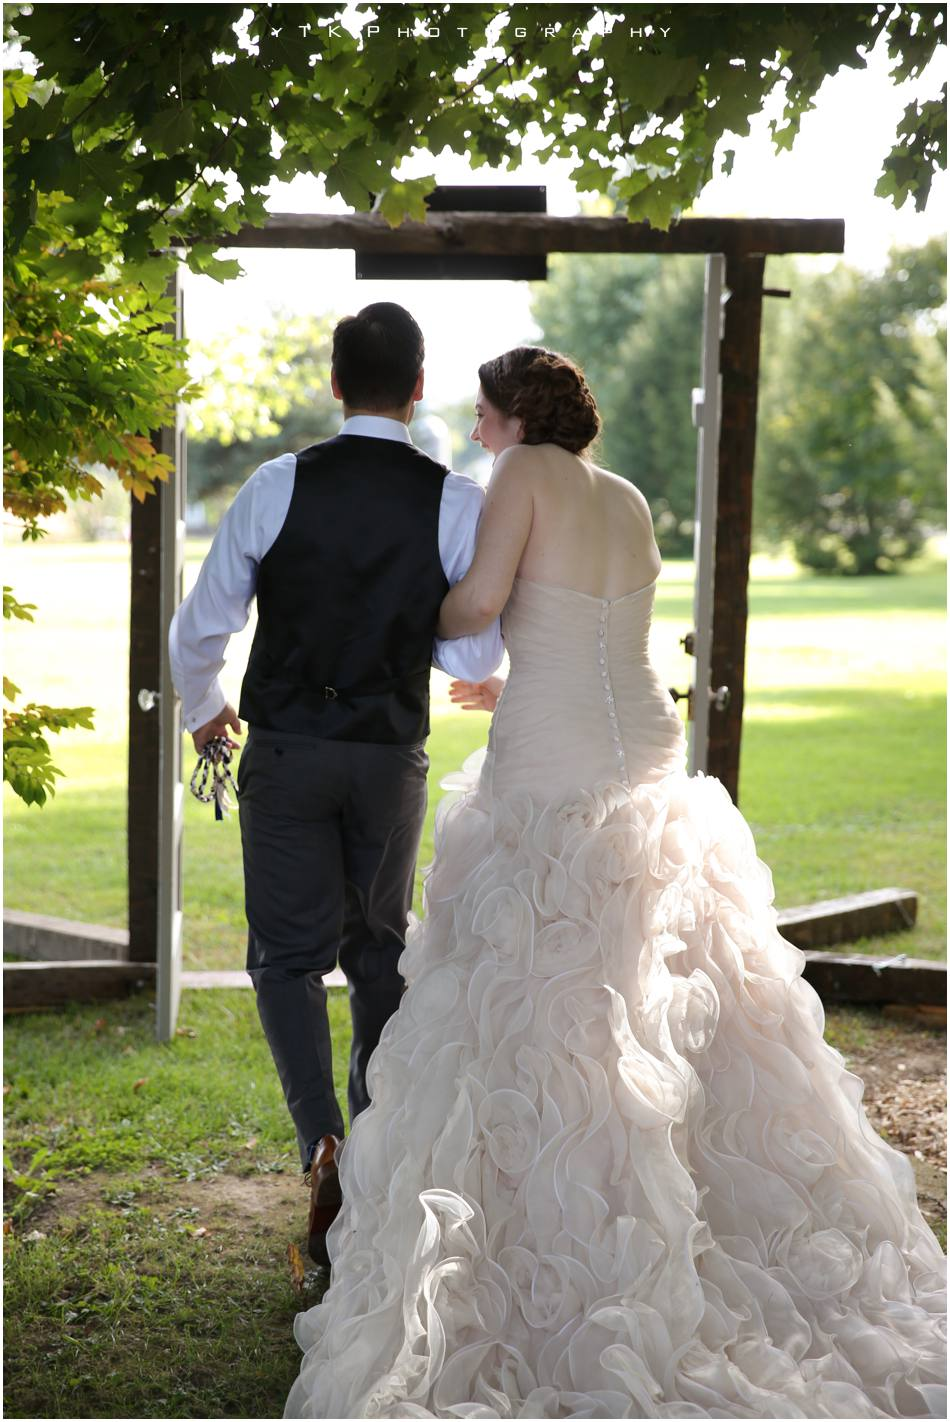 Olde_Tater_Barn_Wedding_031